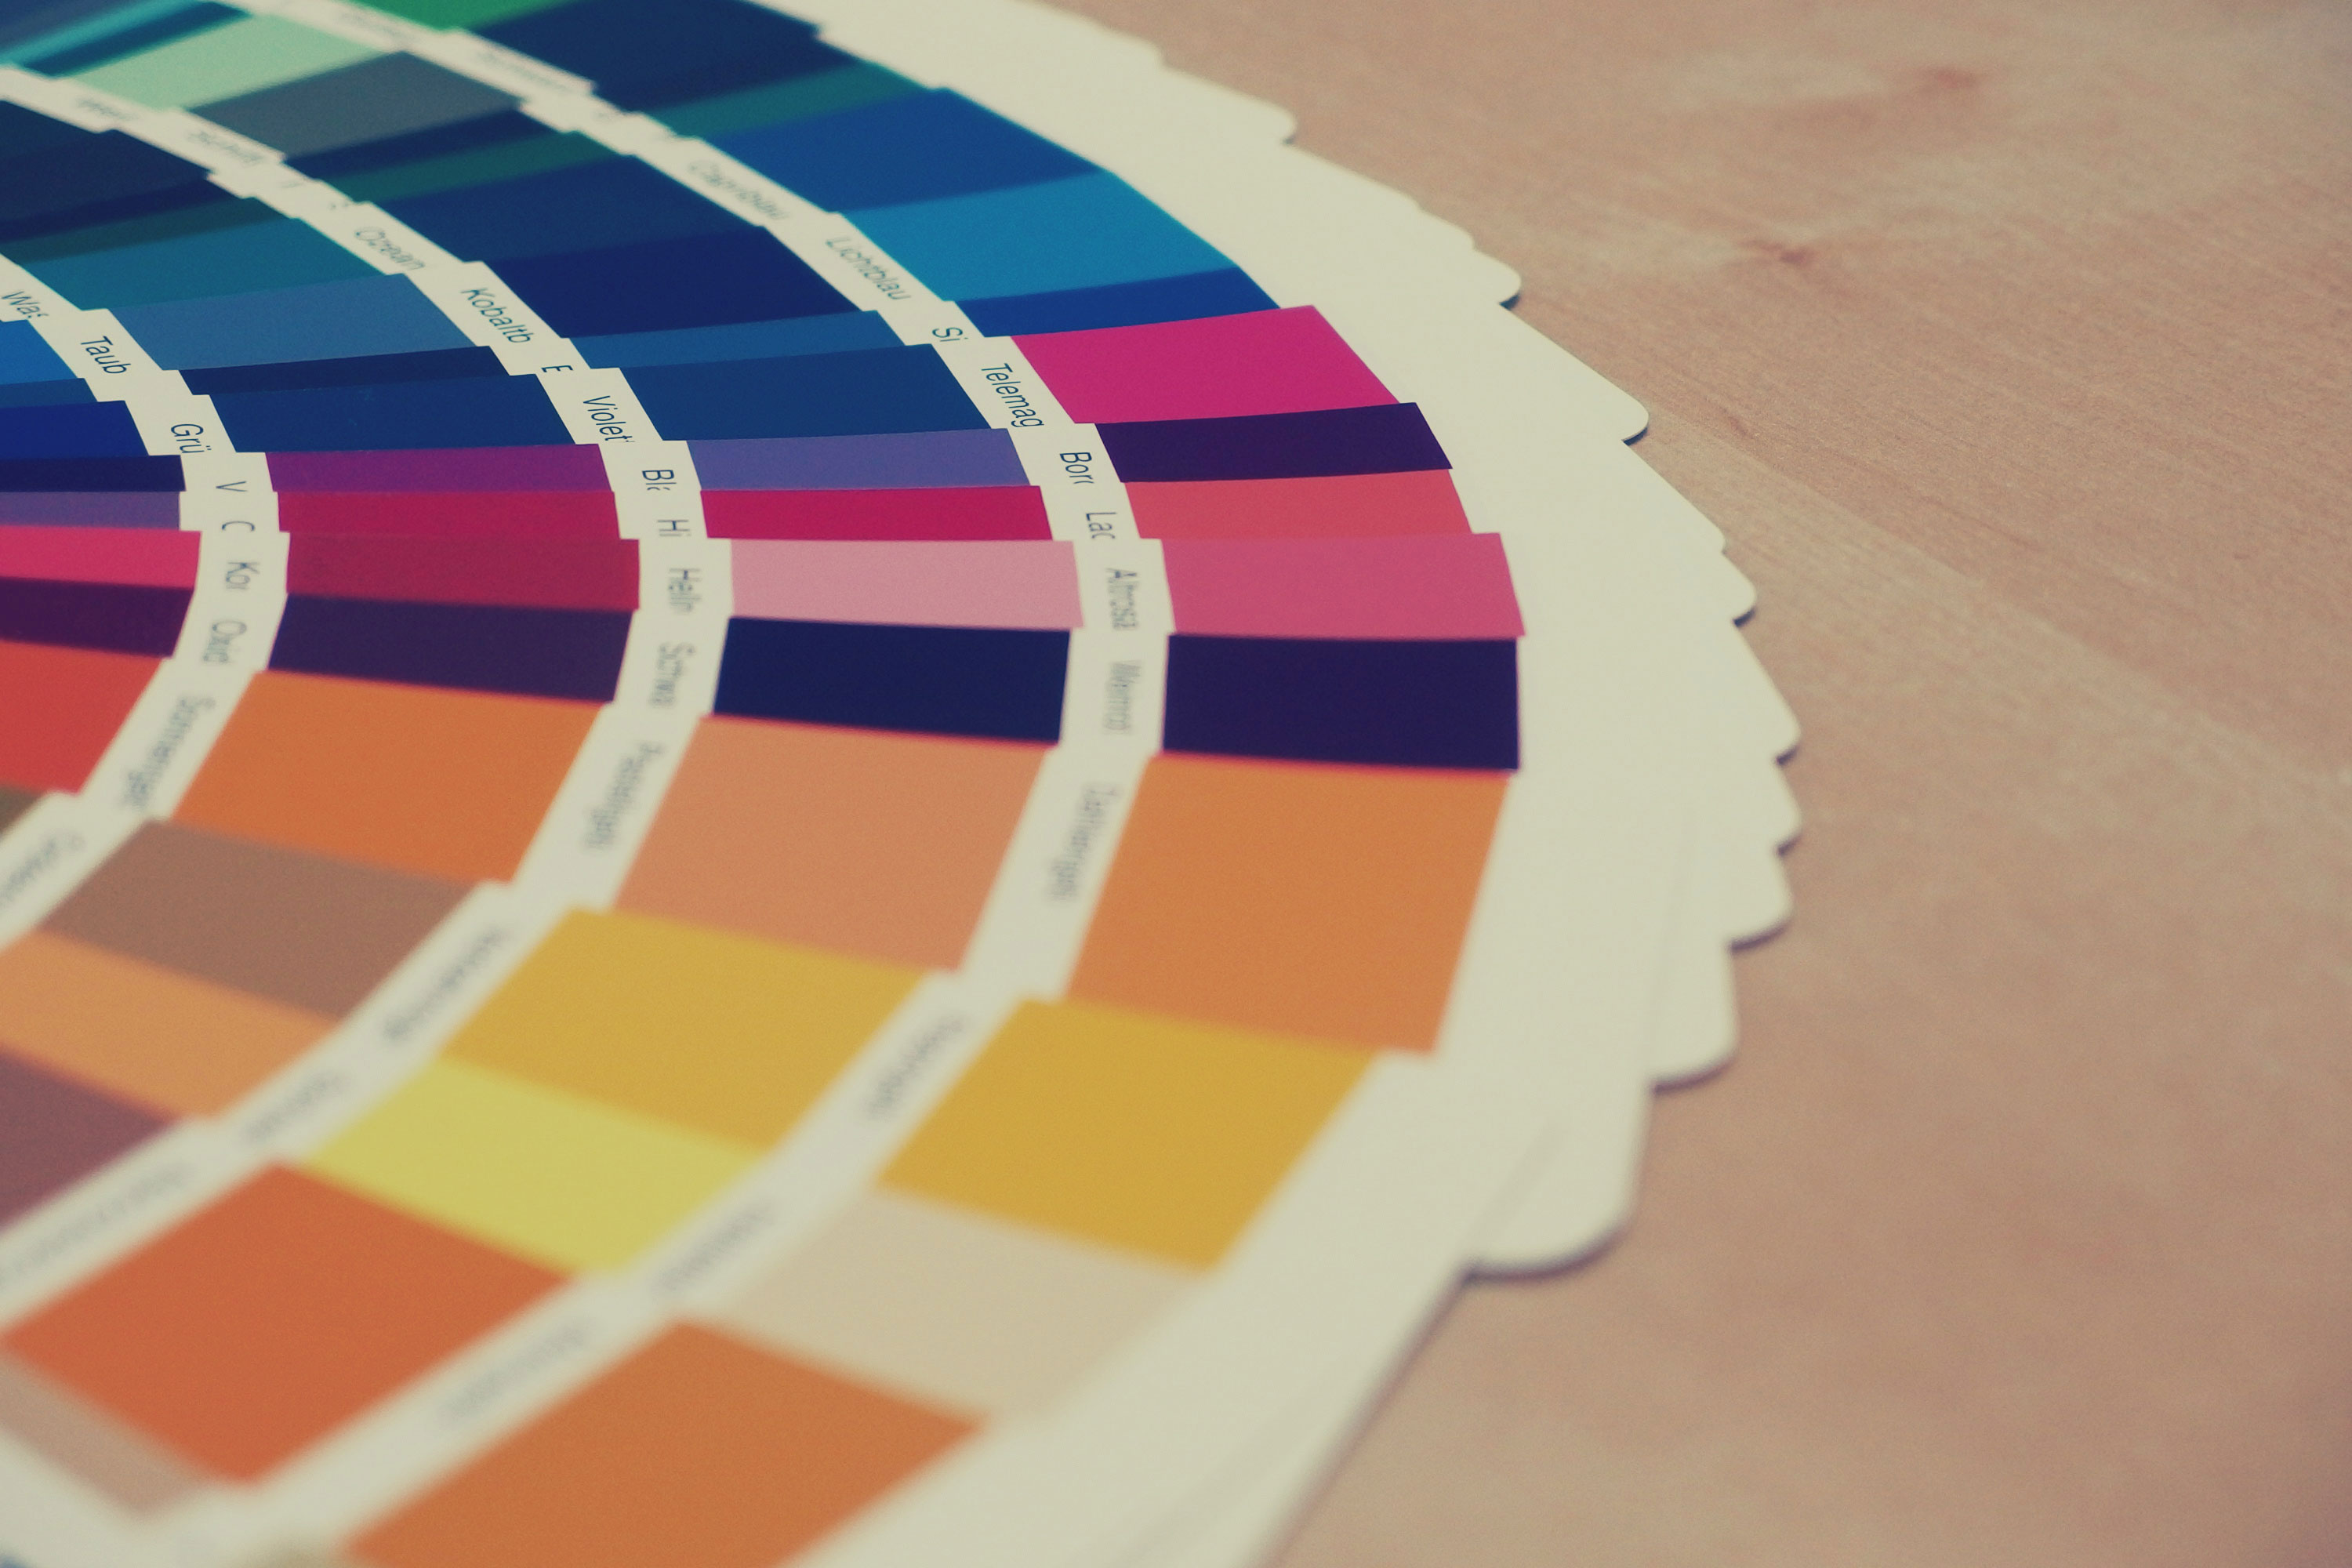 Paint Colors: How well do you know your color vocabulary?